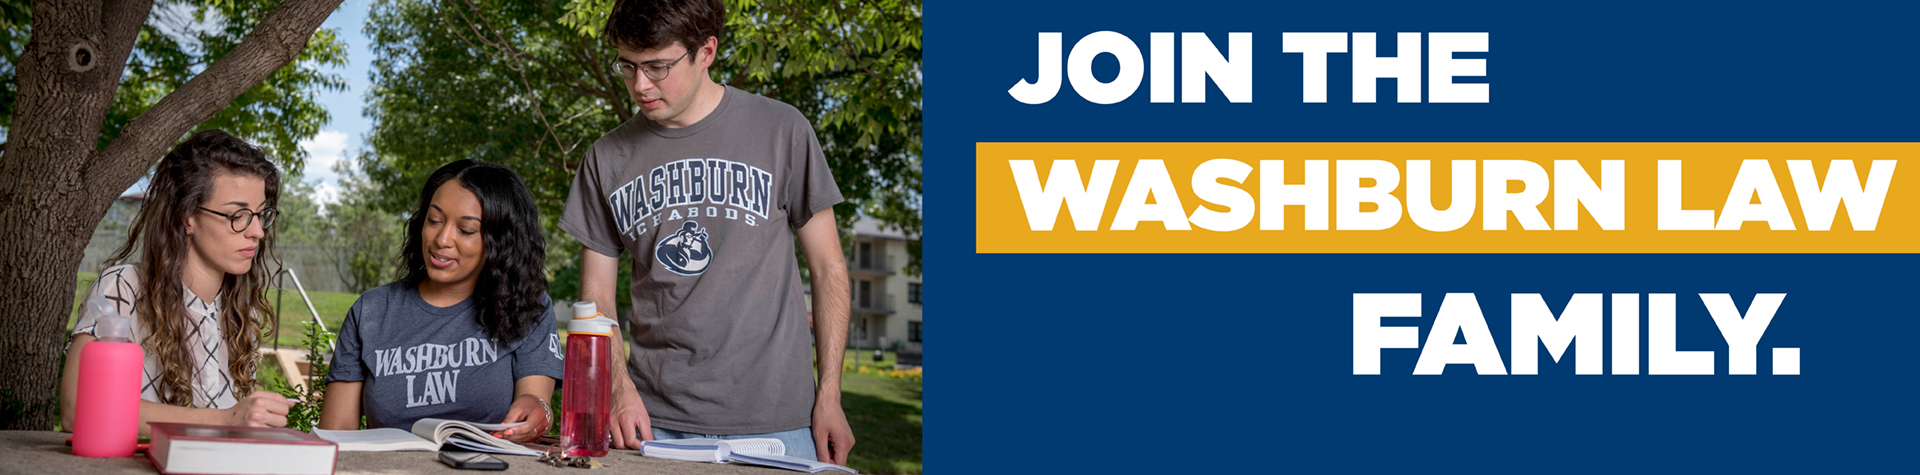 Join the Washburn Law family